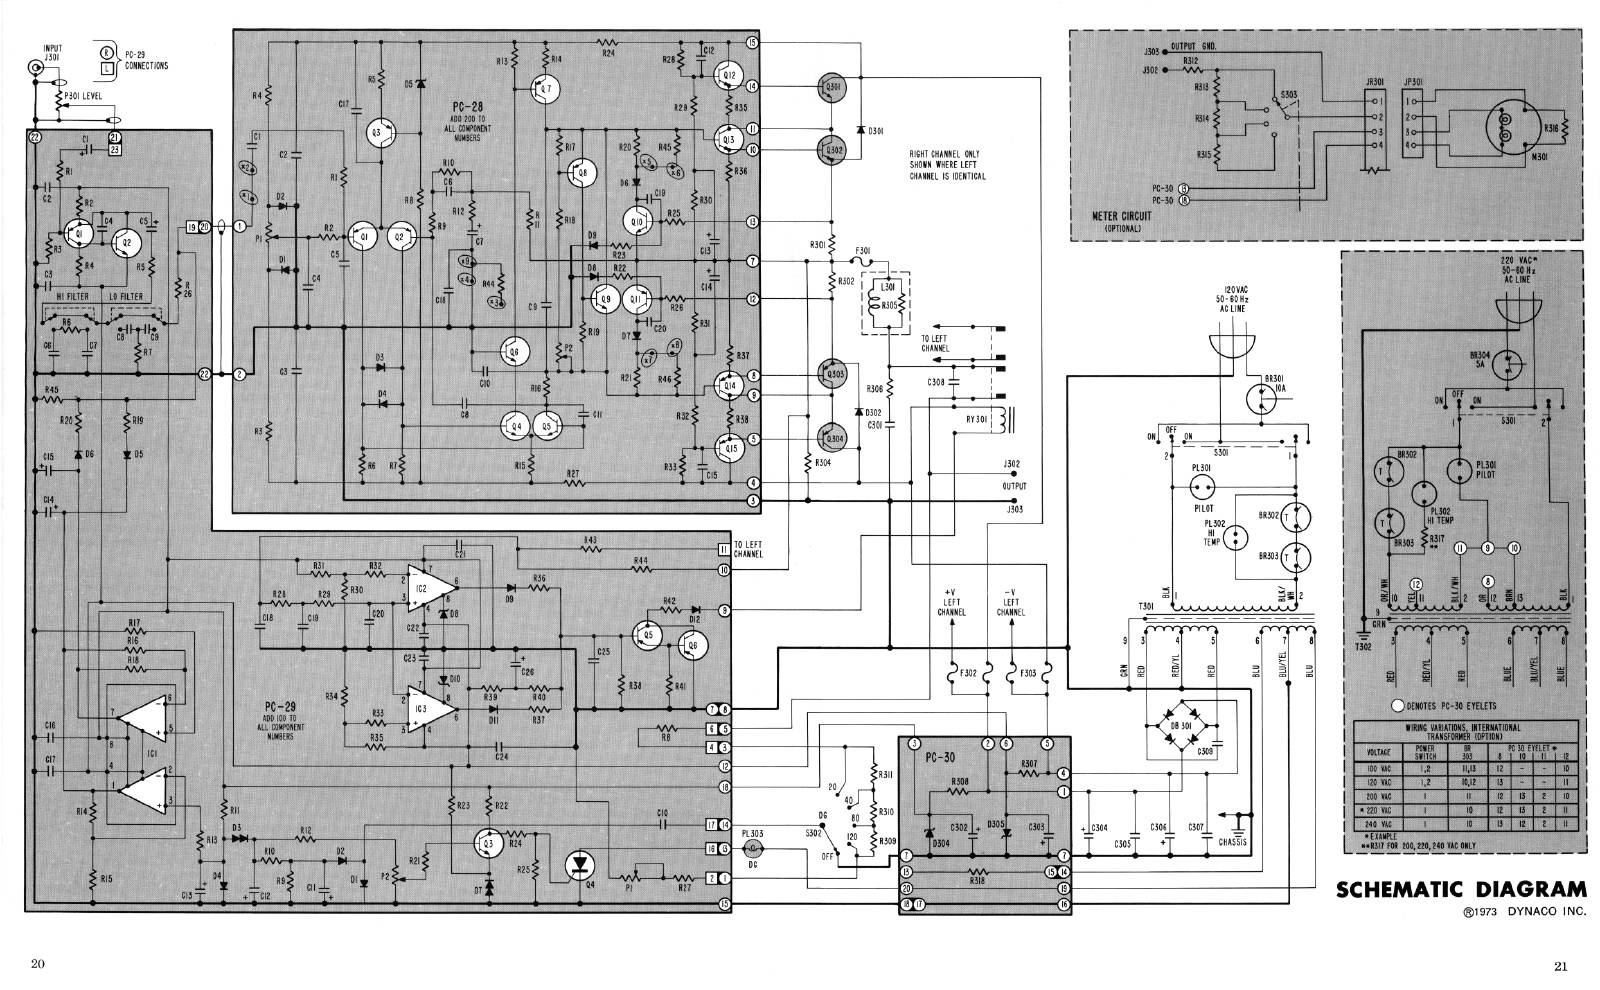 Stereo 400 416 And 410 Fan Relay Wiring Diagram On Dual Electric Contrast This With The Pc 29 Schematic In Manual That I Have Note Its A Large High Res File At About 5 Megs So Will Take Little While To